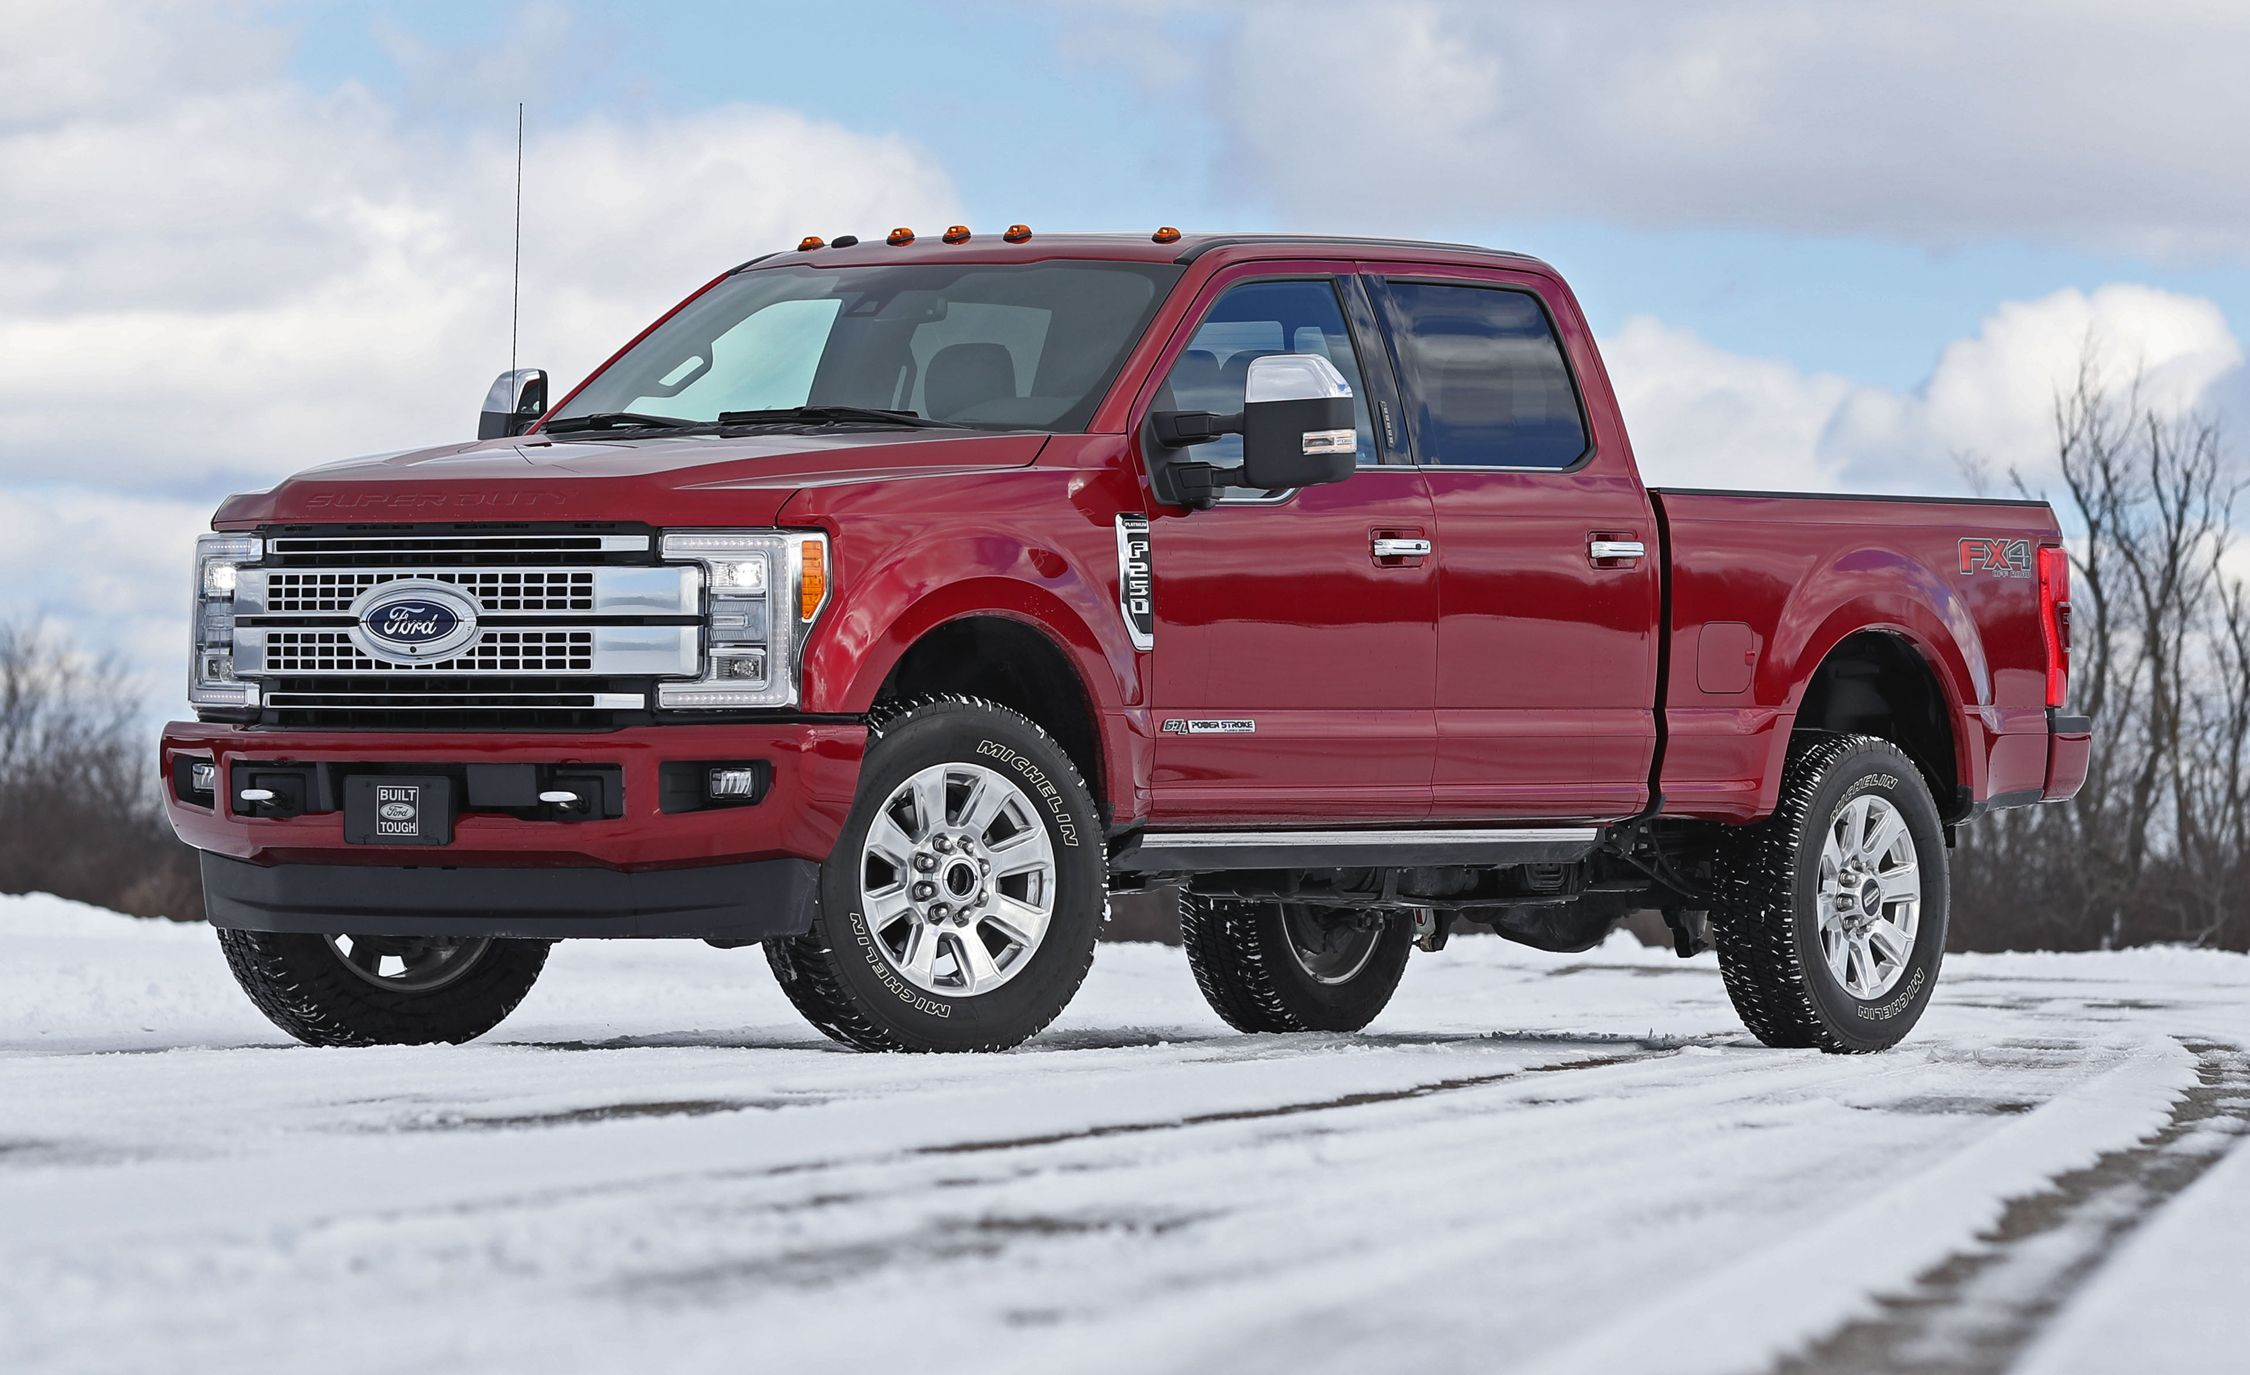 2017 Ford F-series Super Duty | Engine and Transmission Review | Car and Driver